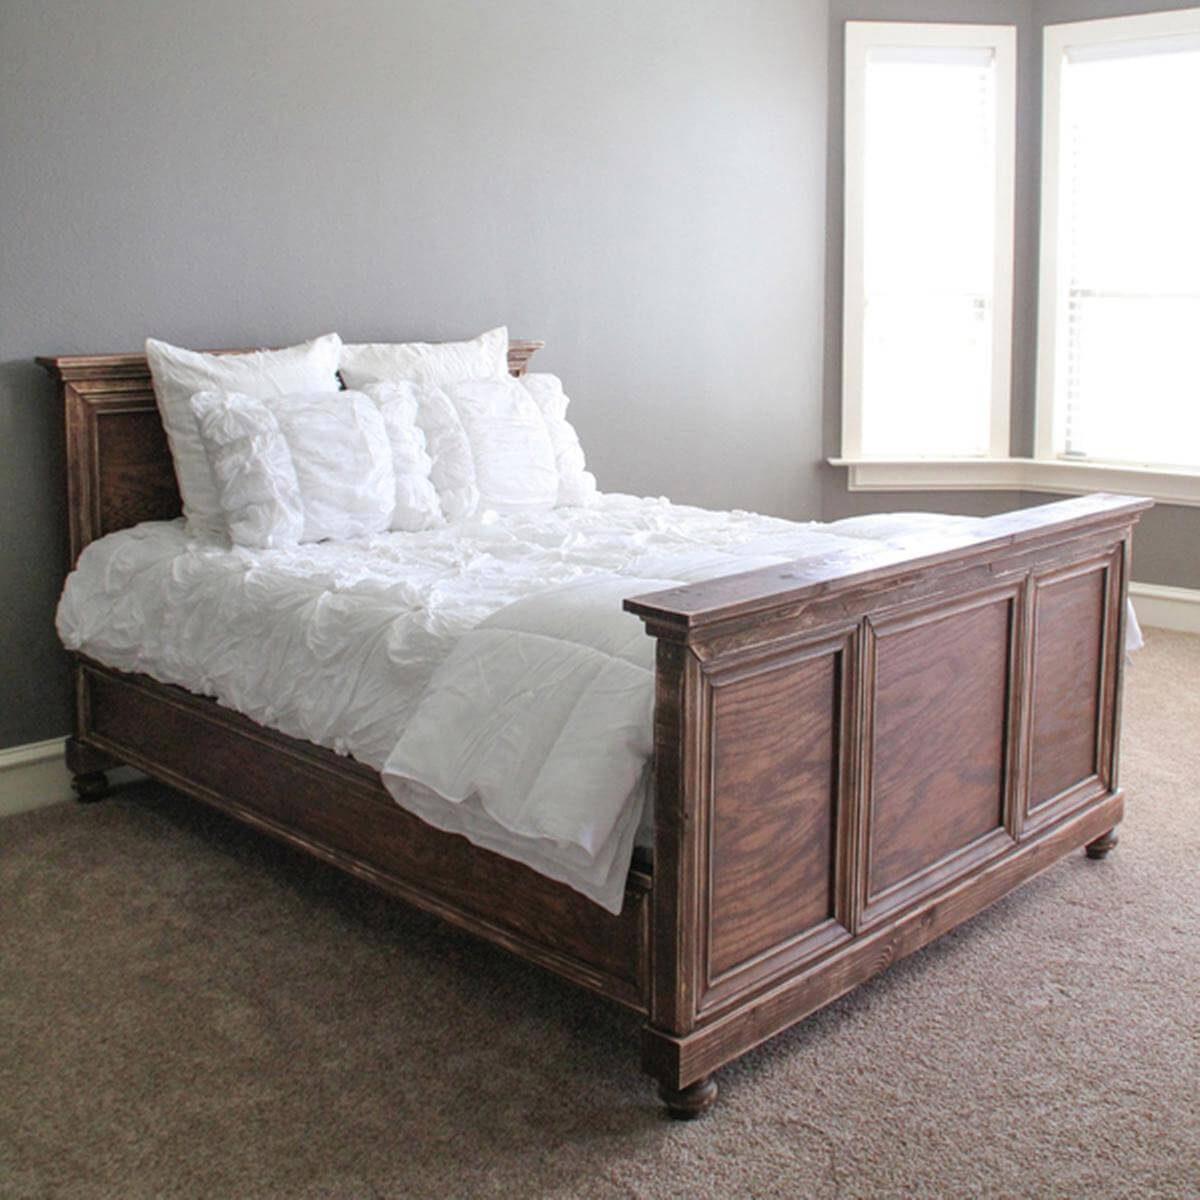 Plywood Bedframe Dressed Up with Molding